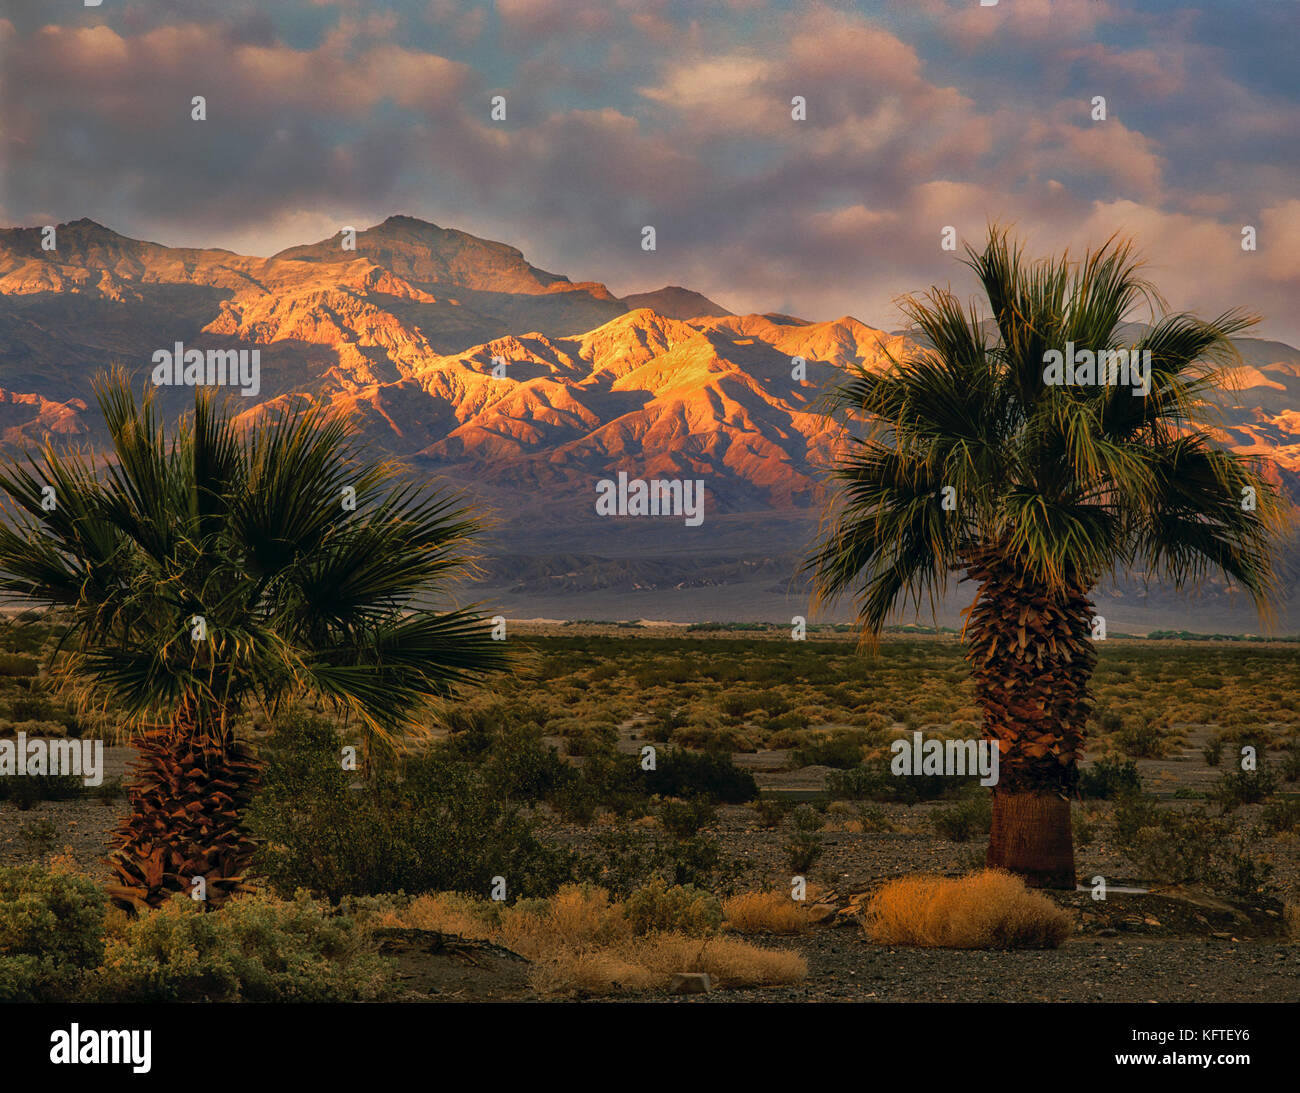 Sunset with palm trees and funeral Mountains. Death Valley National Park, California - Stock Image